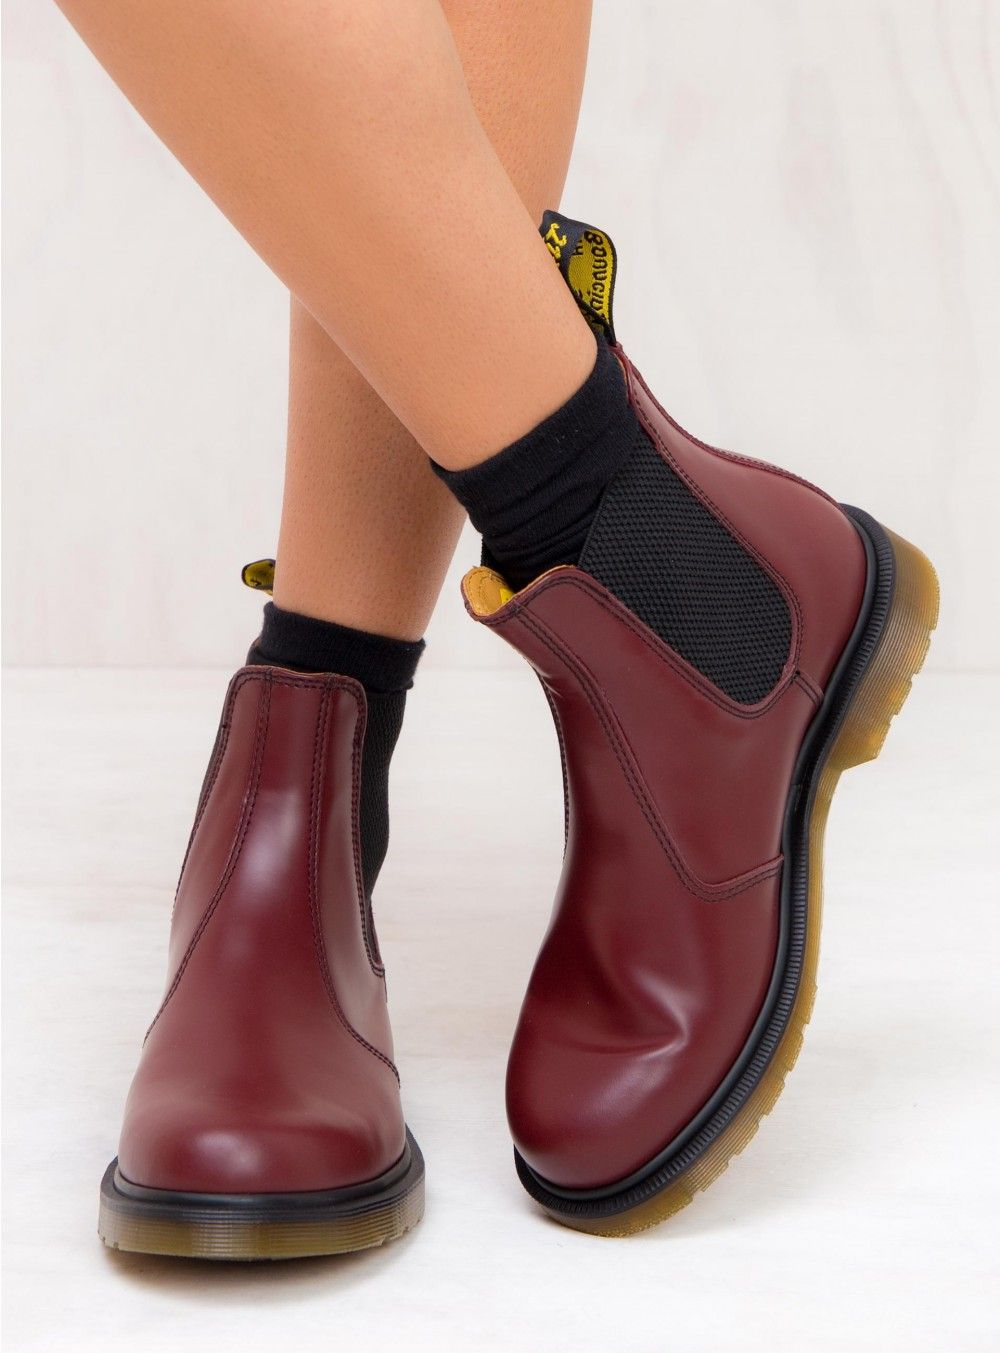 Dr. Martens 2976 Smooth Chelsea Boots Cherry Red  9fd7b02d874